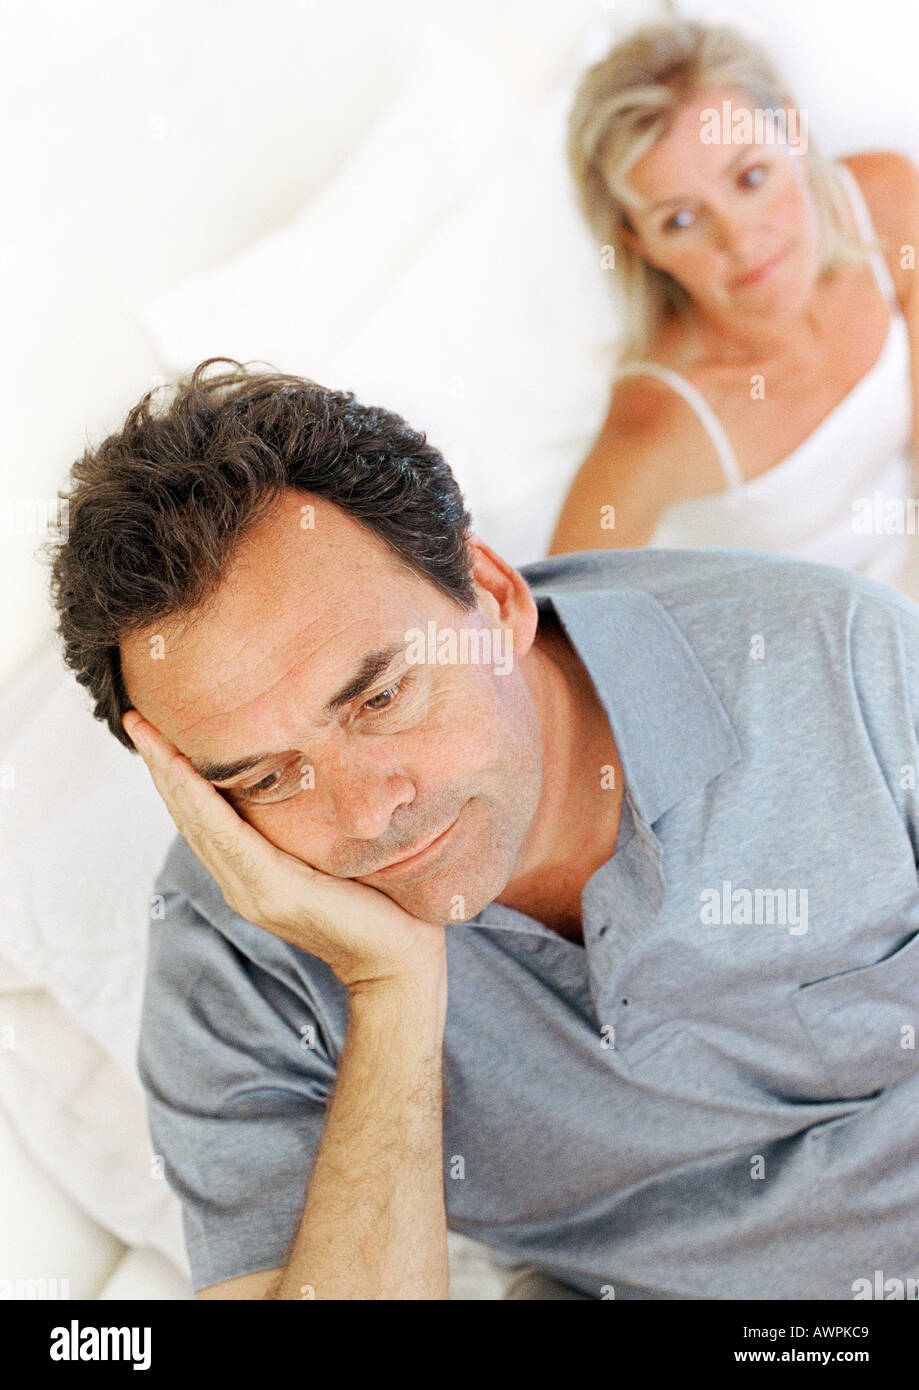 Man sitting on bed, holding head, wife in background - Stock Image